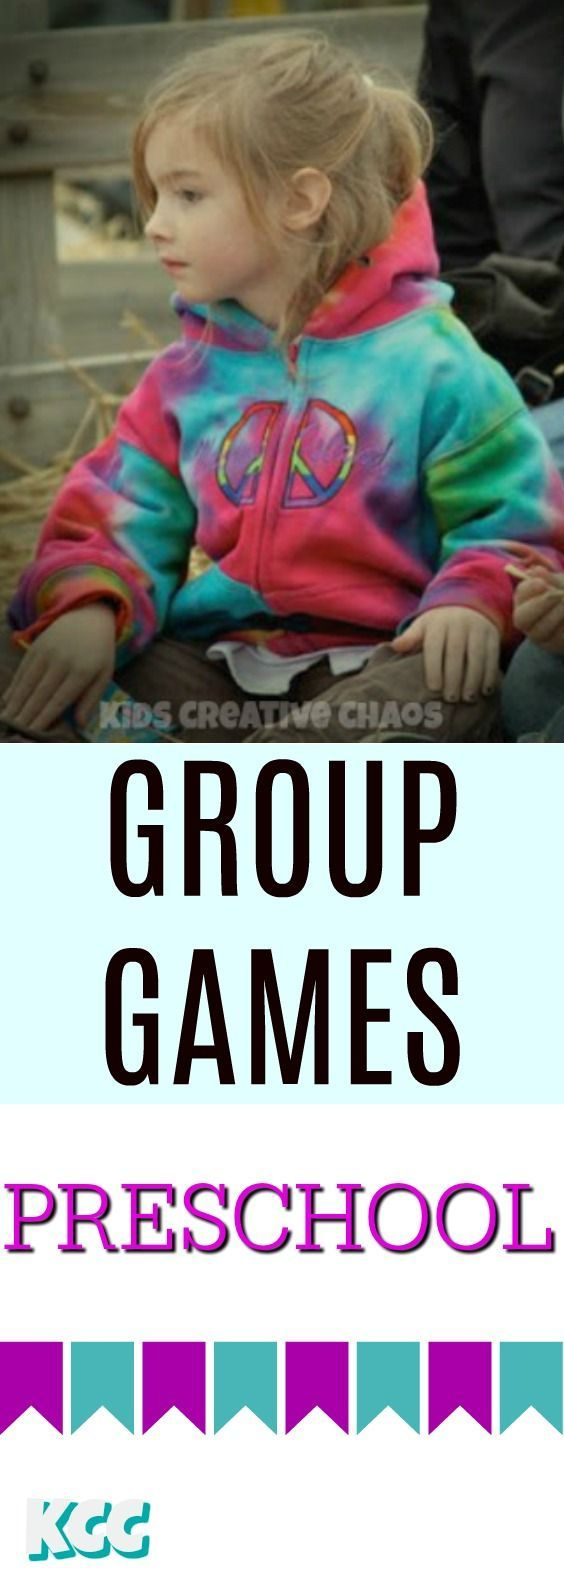 Group games for preschoolers ece early elementary kindergarten circle time. #kidscreativechaos